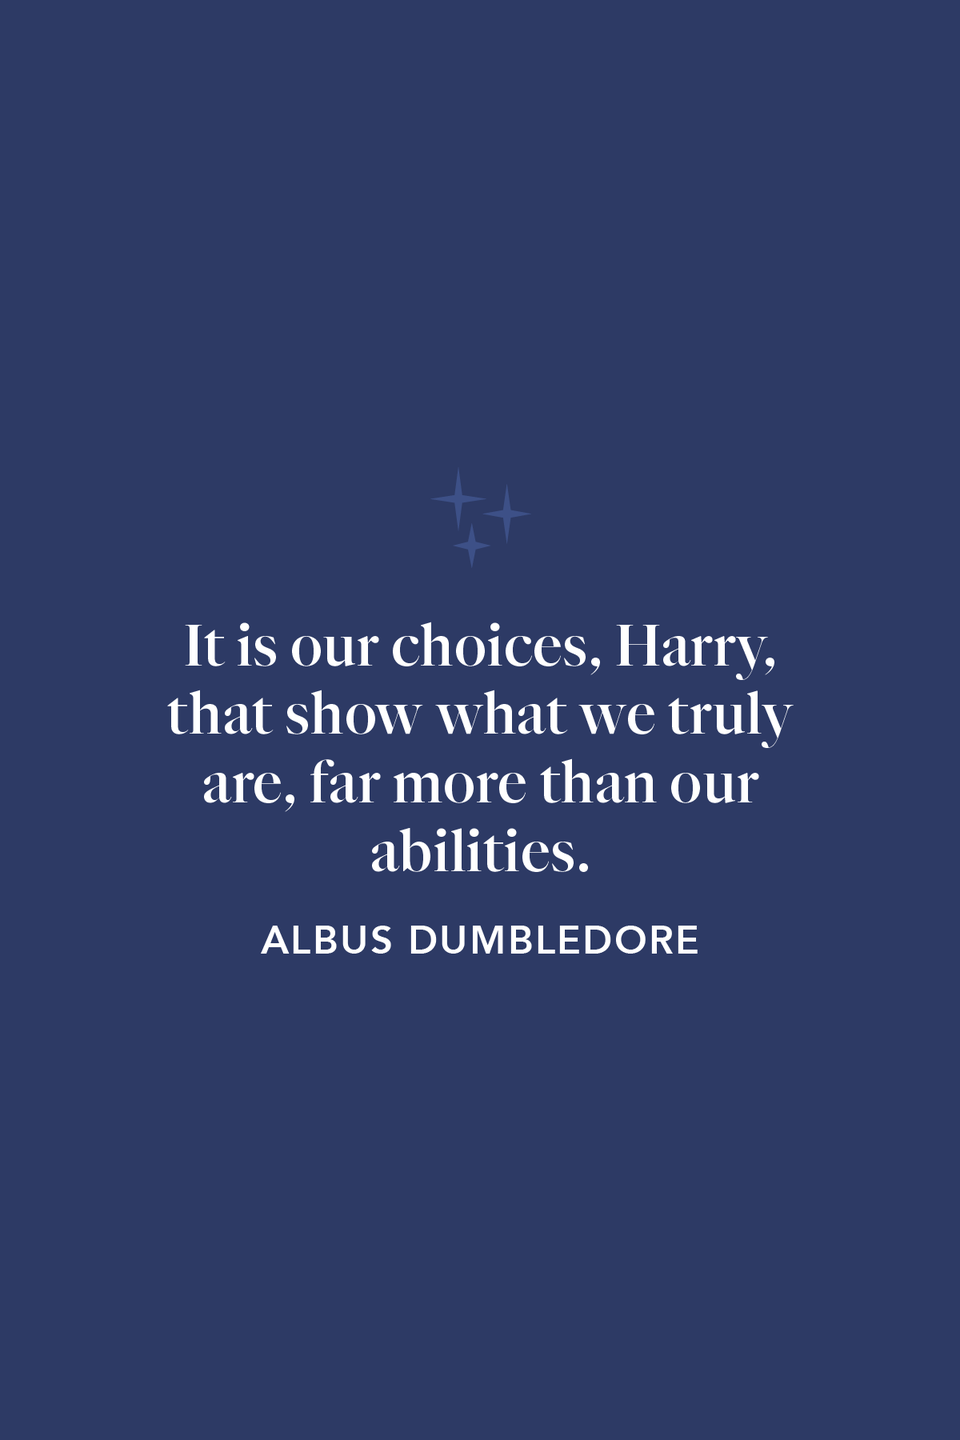 """<p>In chapter 18 of <em>The Chamber of Secrets, </em>Dumbledore says, """"It is our choices, Harry, that show what we truly are, far more than our abilities.""""</p>"""